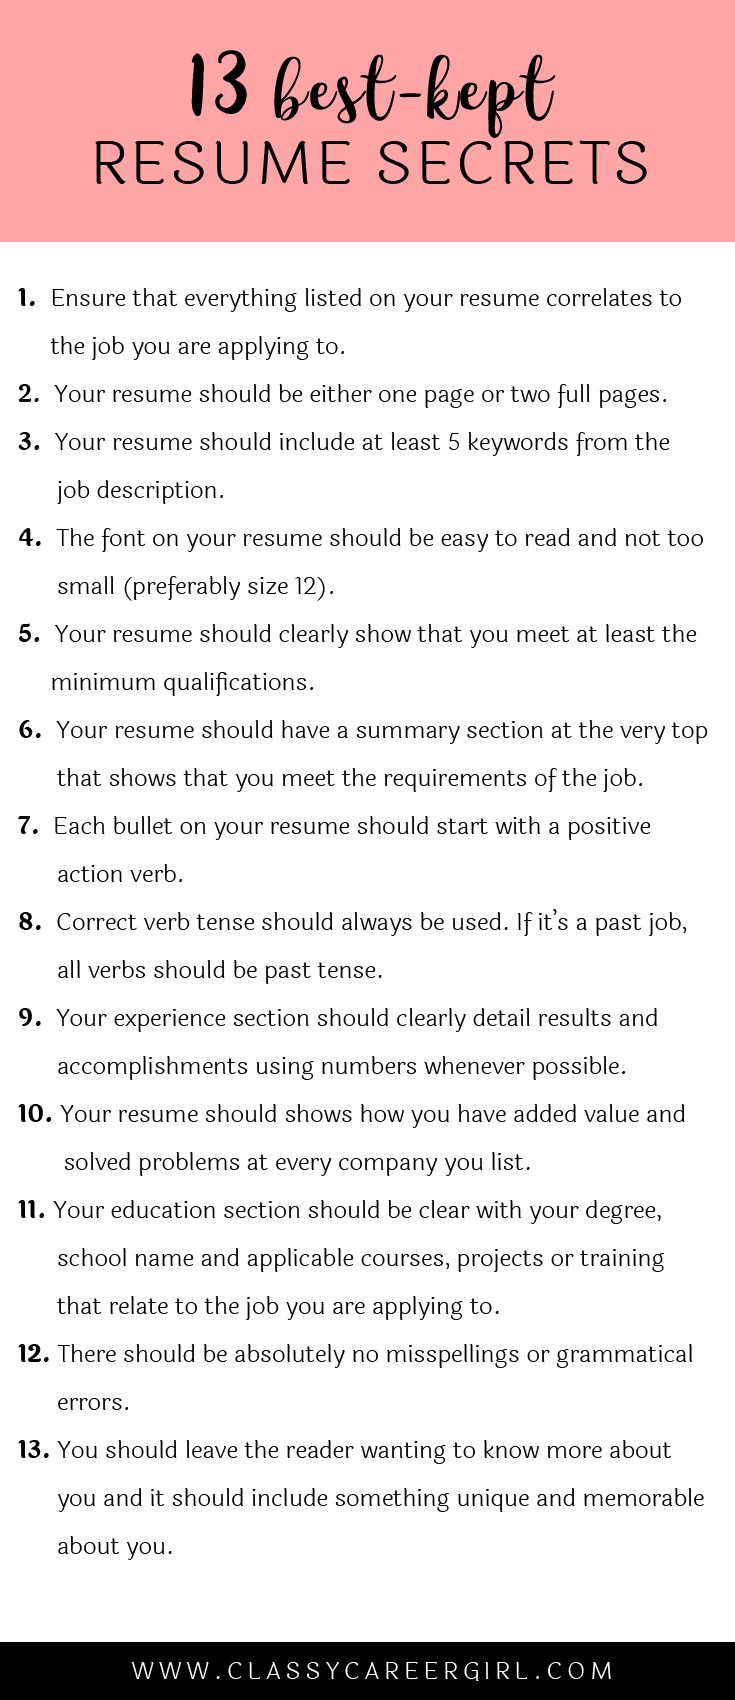 Opposenewapstandardsus  Winning  Ideas About Resume On Pinterest  Cv Format Resume  With Entrancing Some Hiring Managers Will Toss Your Resume Out If You Dont Know These  With Beautiful Free Resume Critique Also Resume References Format In Addition Vet Tech Resume And Make Free Resume As Well As How Long Should Your Resume Be Additionally Resume Volunteer Experience From Pinterestcom With Opposenewapstandardsus  Entrancing  Ideas About Resume On Pinterest  Cv Format Resume  With Beautiful Some Hiring Managers Will Toss Your Resume Out If You Dont Know These  And Winning Free Resume Critique Also Resume References Format In Addition Vet Tech Resume From Pinterestcom